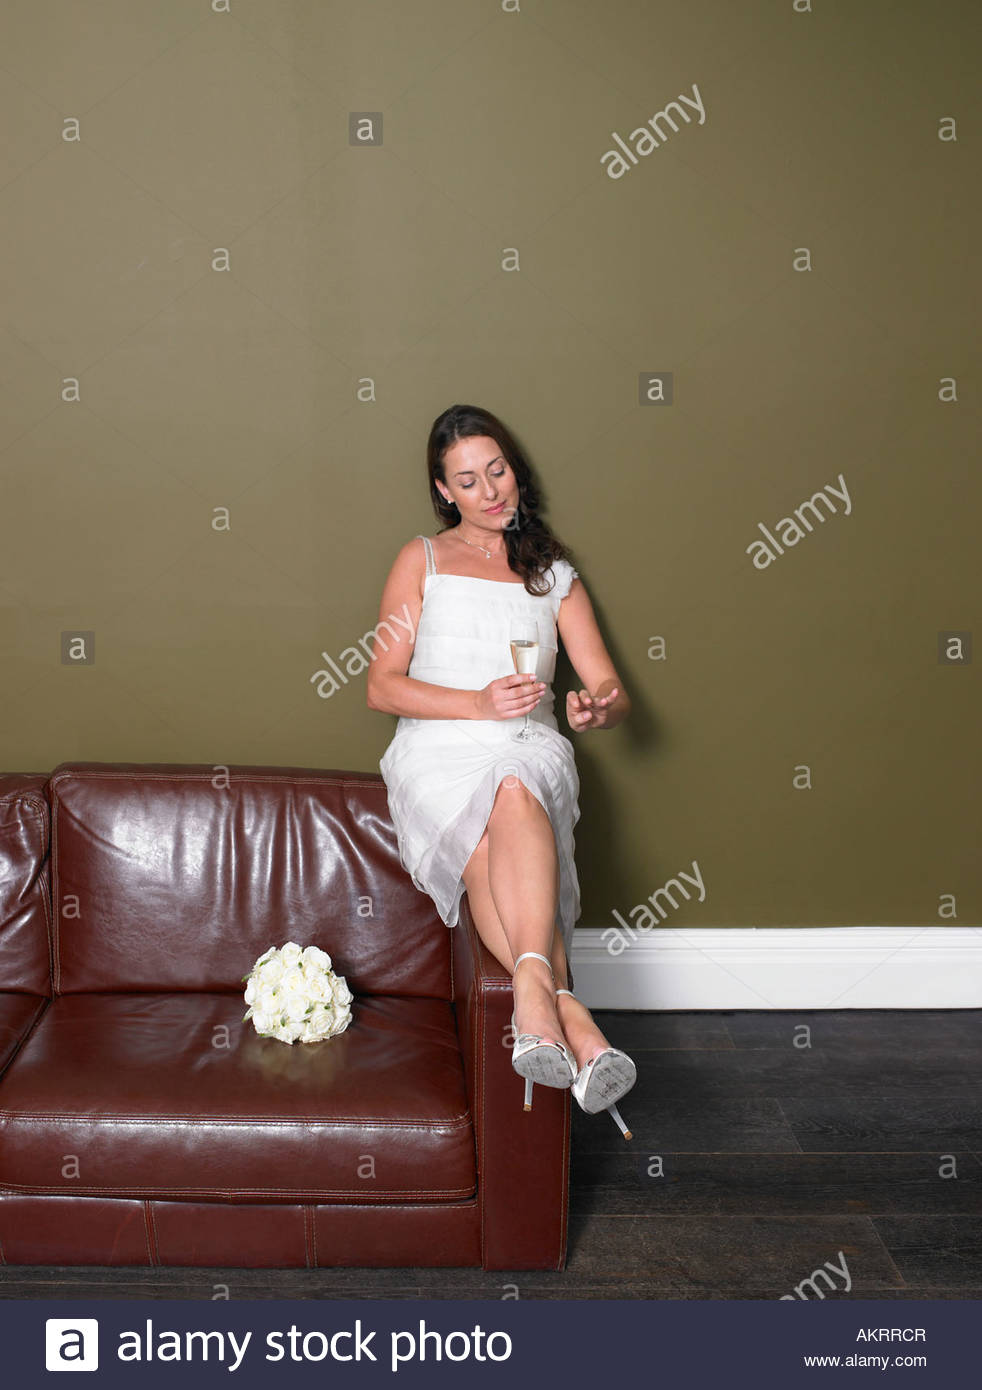 A bride looking at hand - Stock Image